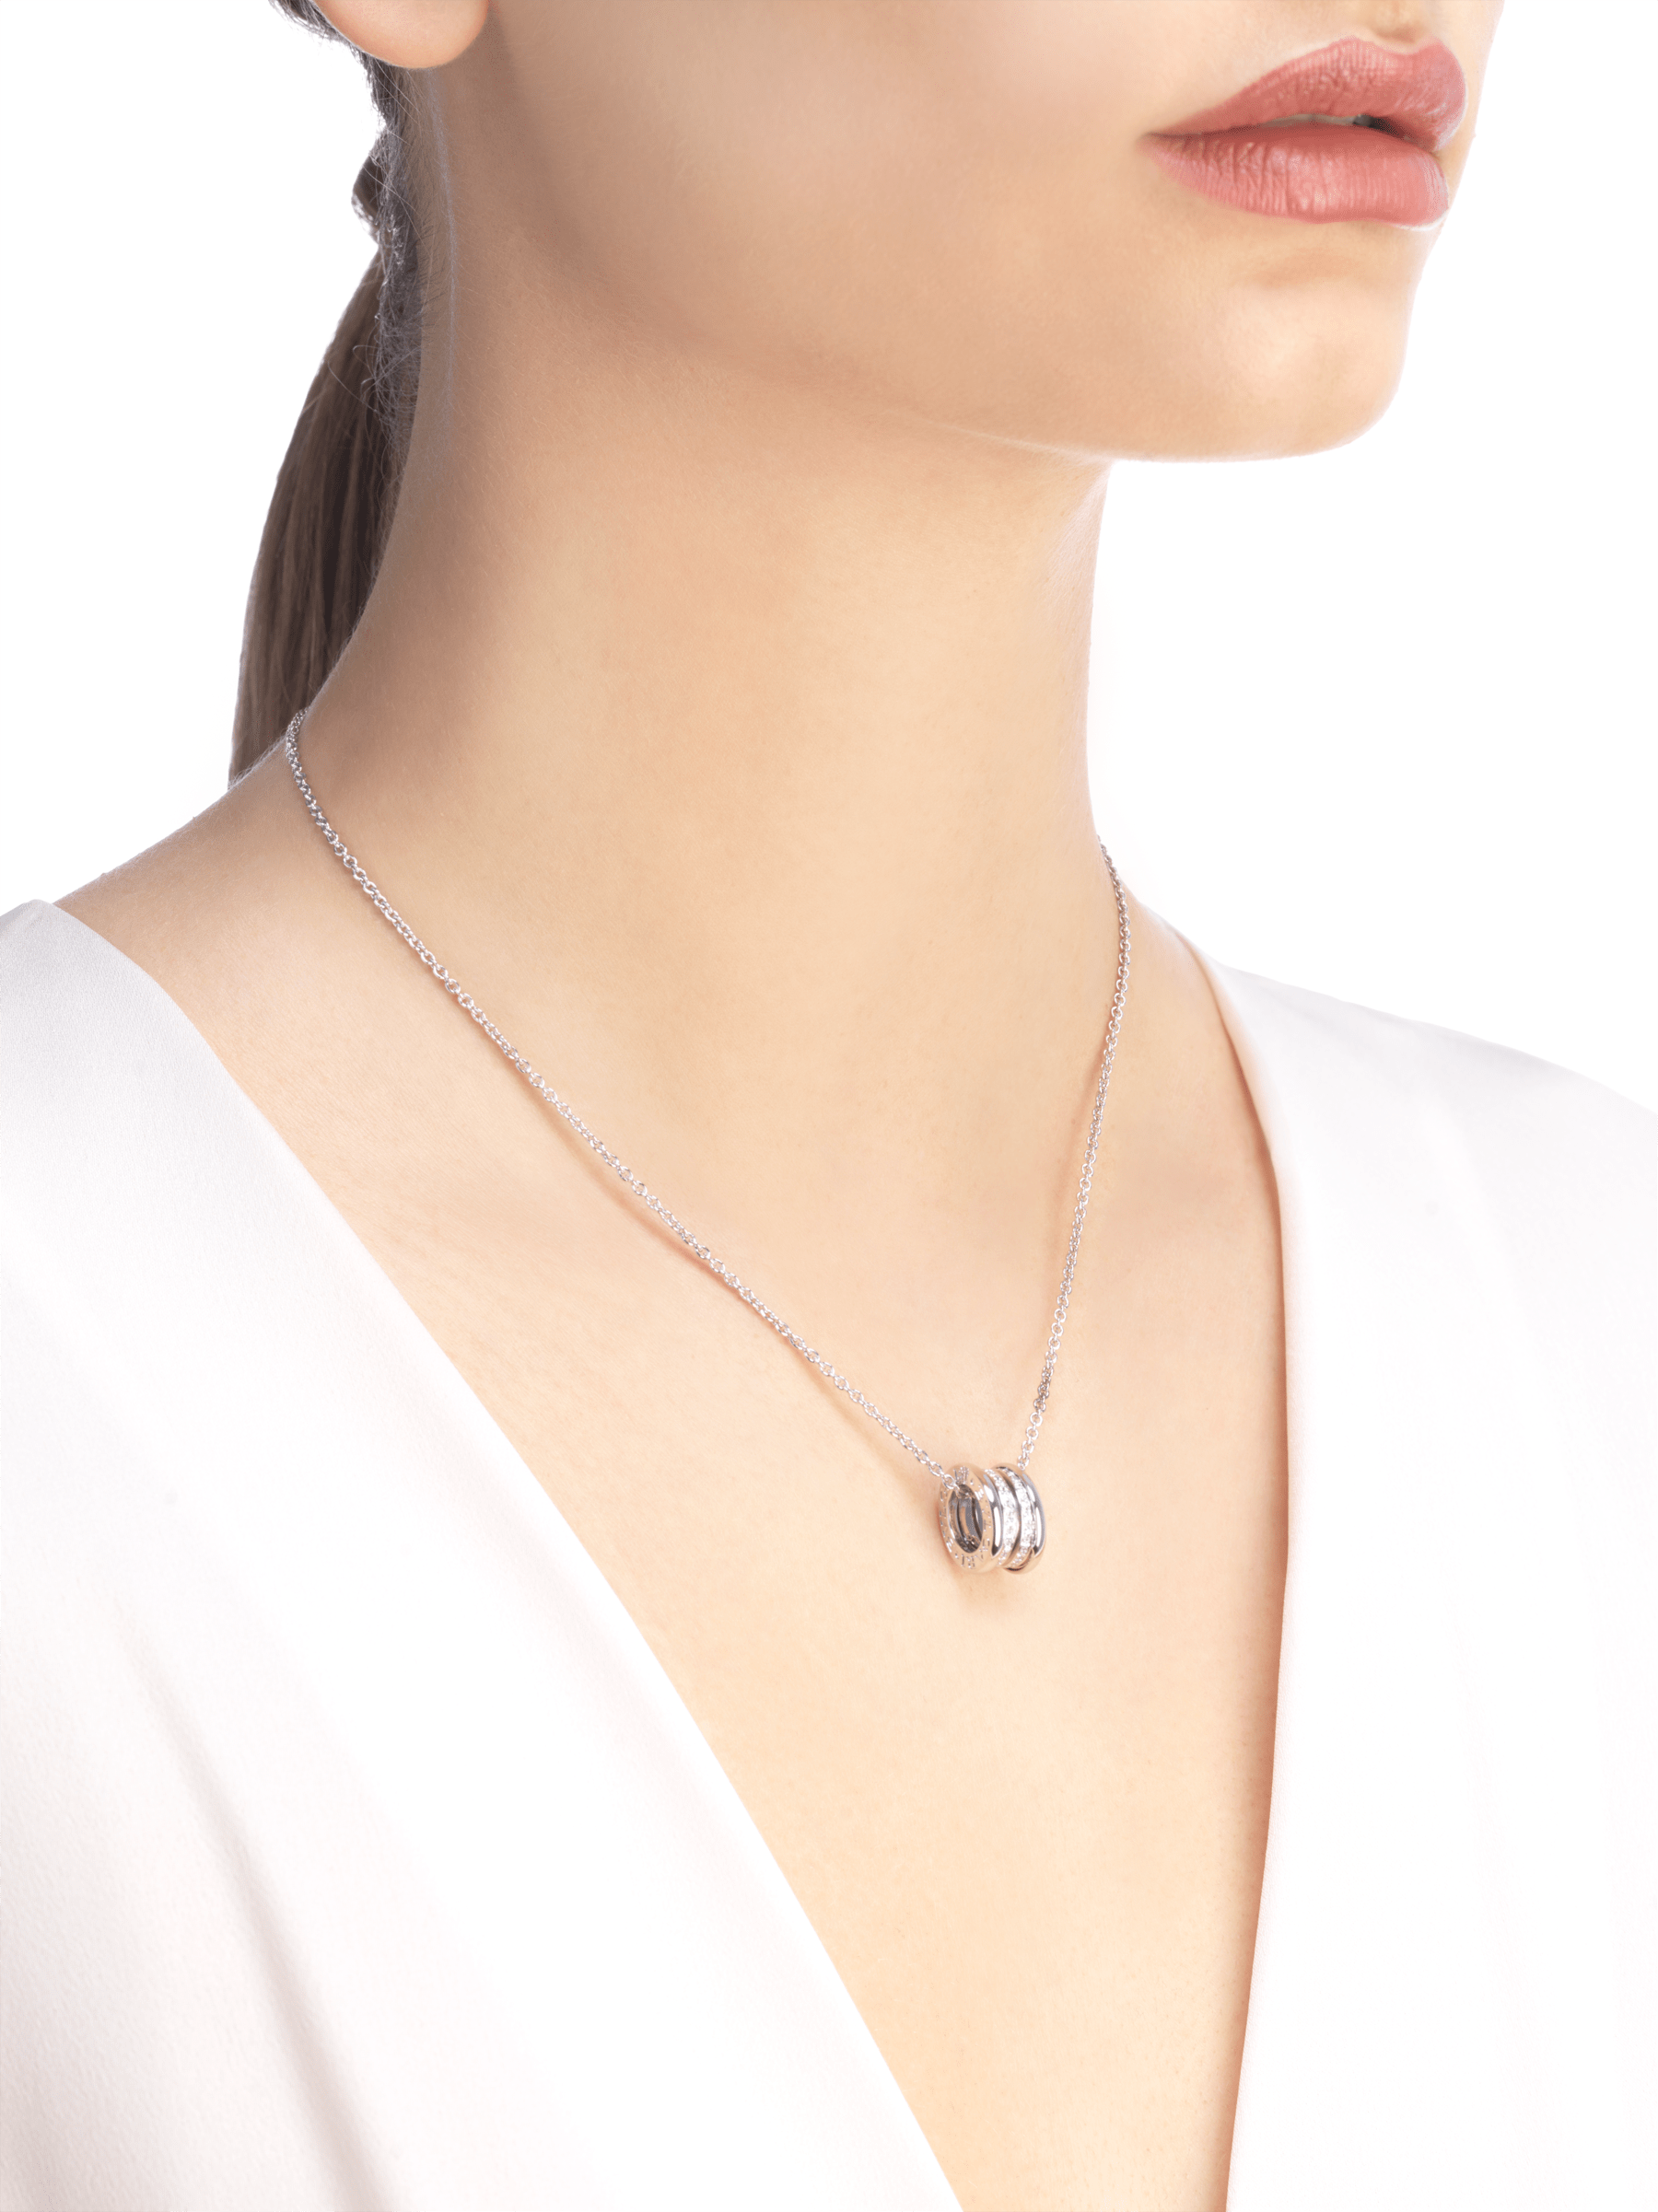 B.zero1 18 kt white gold necklace with small round pendant in 18kt white gold, set with pavé diamonds on the spiral. 352816 image 4